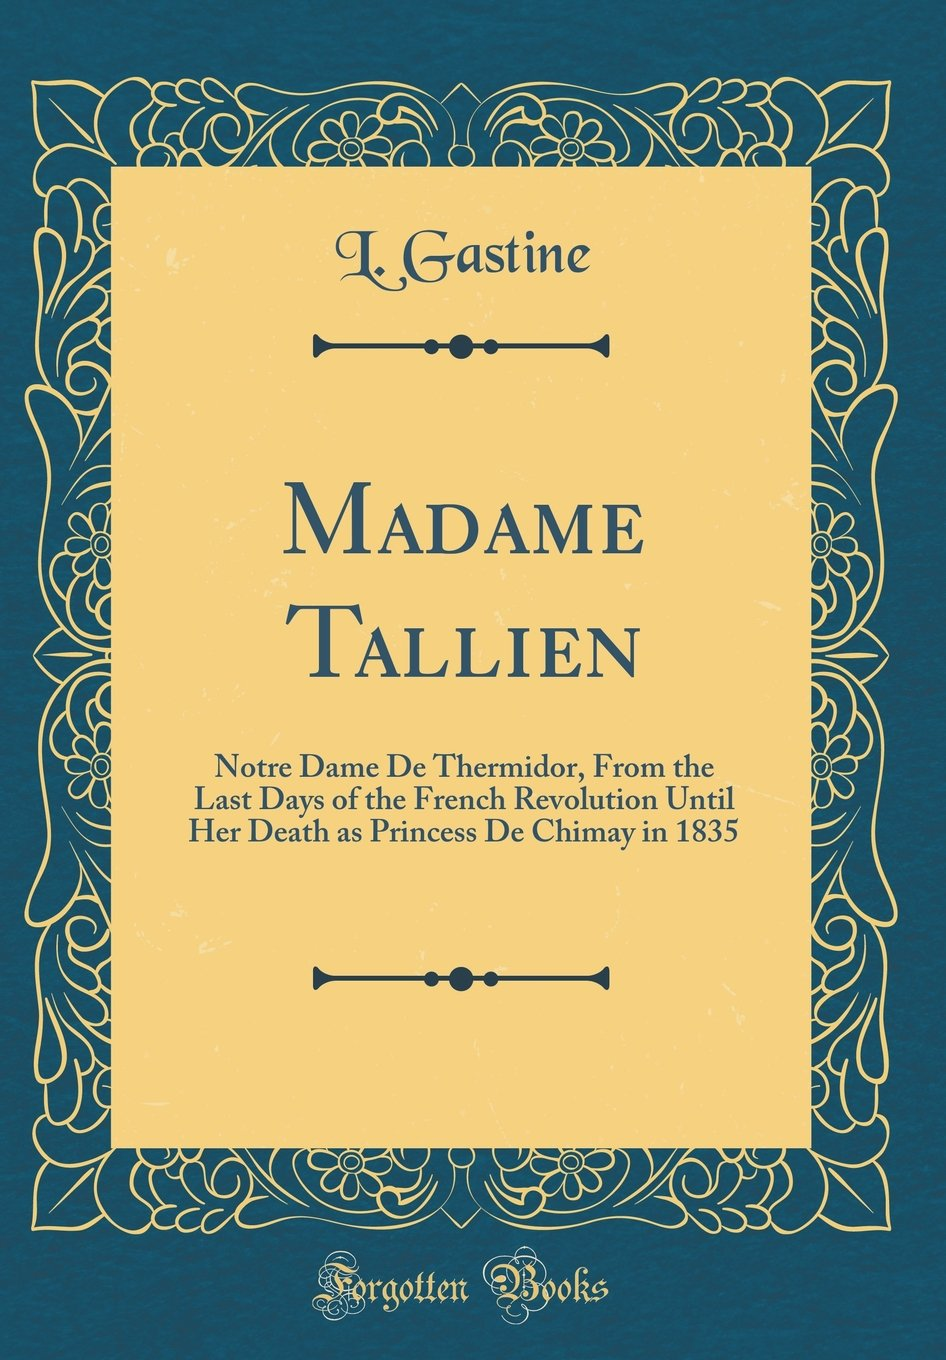 Madame Tallien: Notre Dame De Thermidor, From the Last Days of the French Revolution Until Her Death as Princess De Chimay in 1835 (Classic Reprint) ...